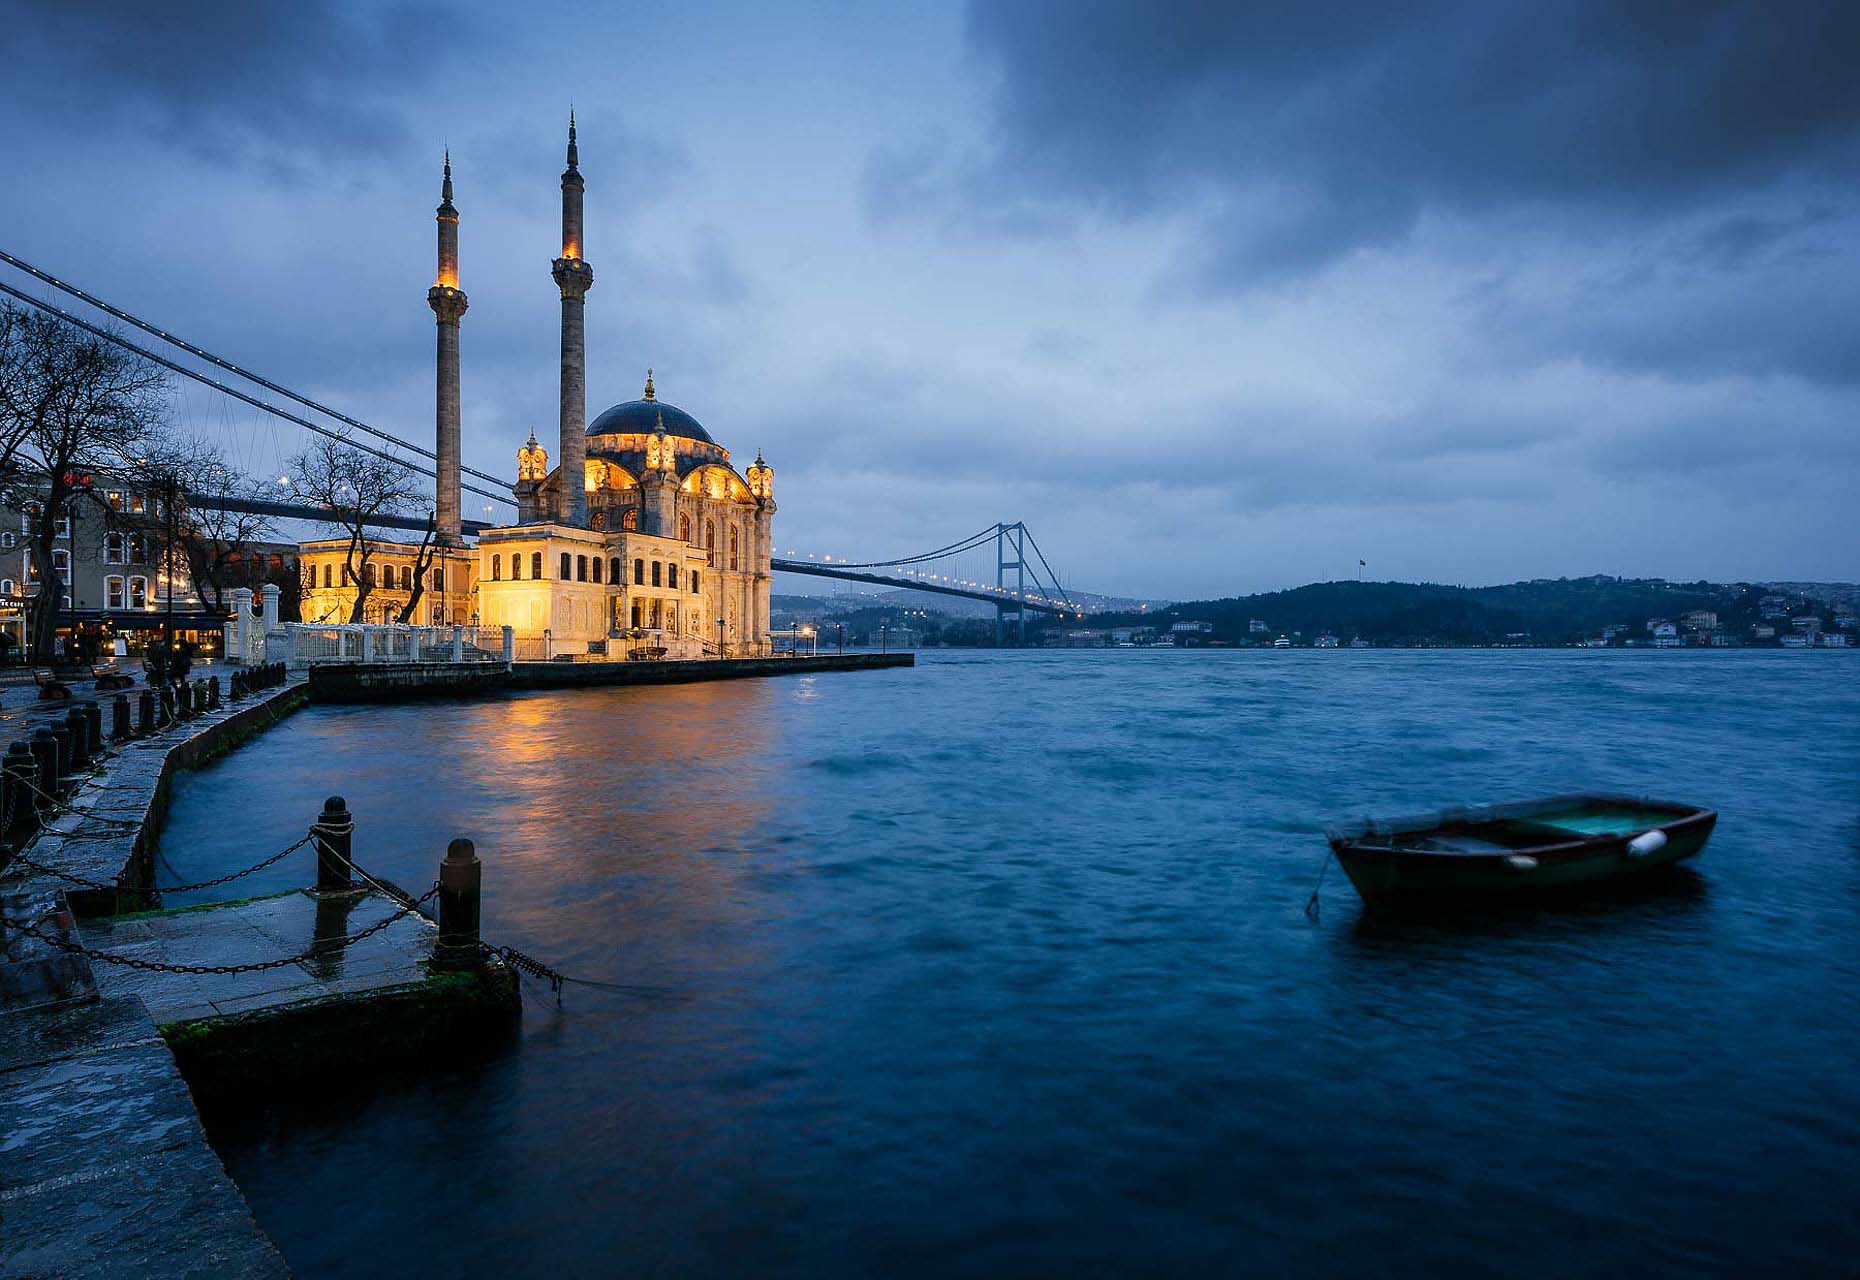 ortakoy-mosque-bhosphorus-bridge-twilight-istanbul-turkey-travel-photographer-20